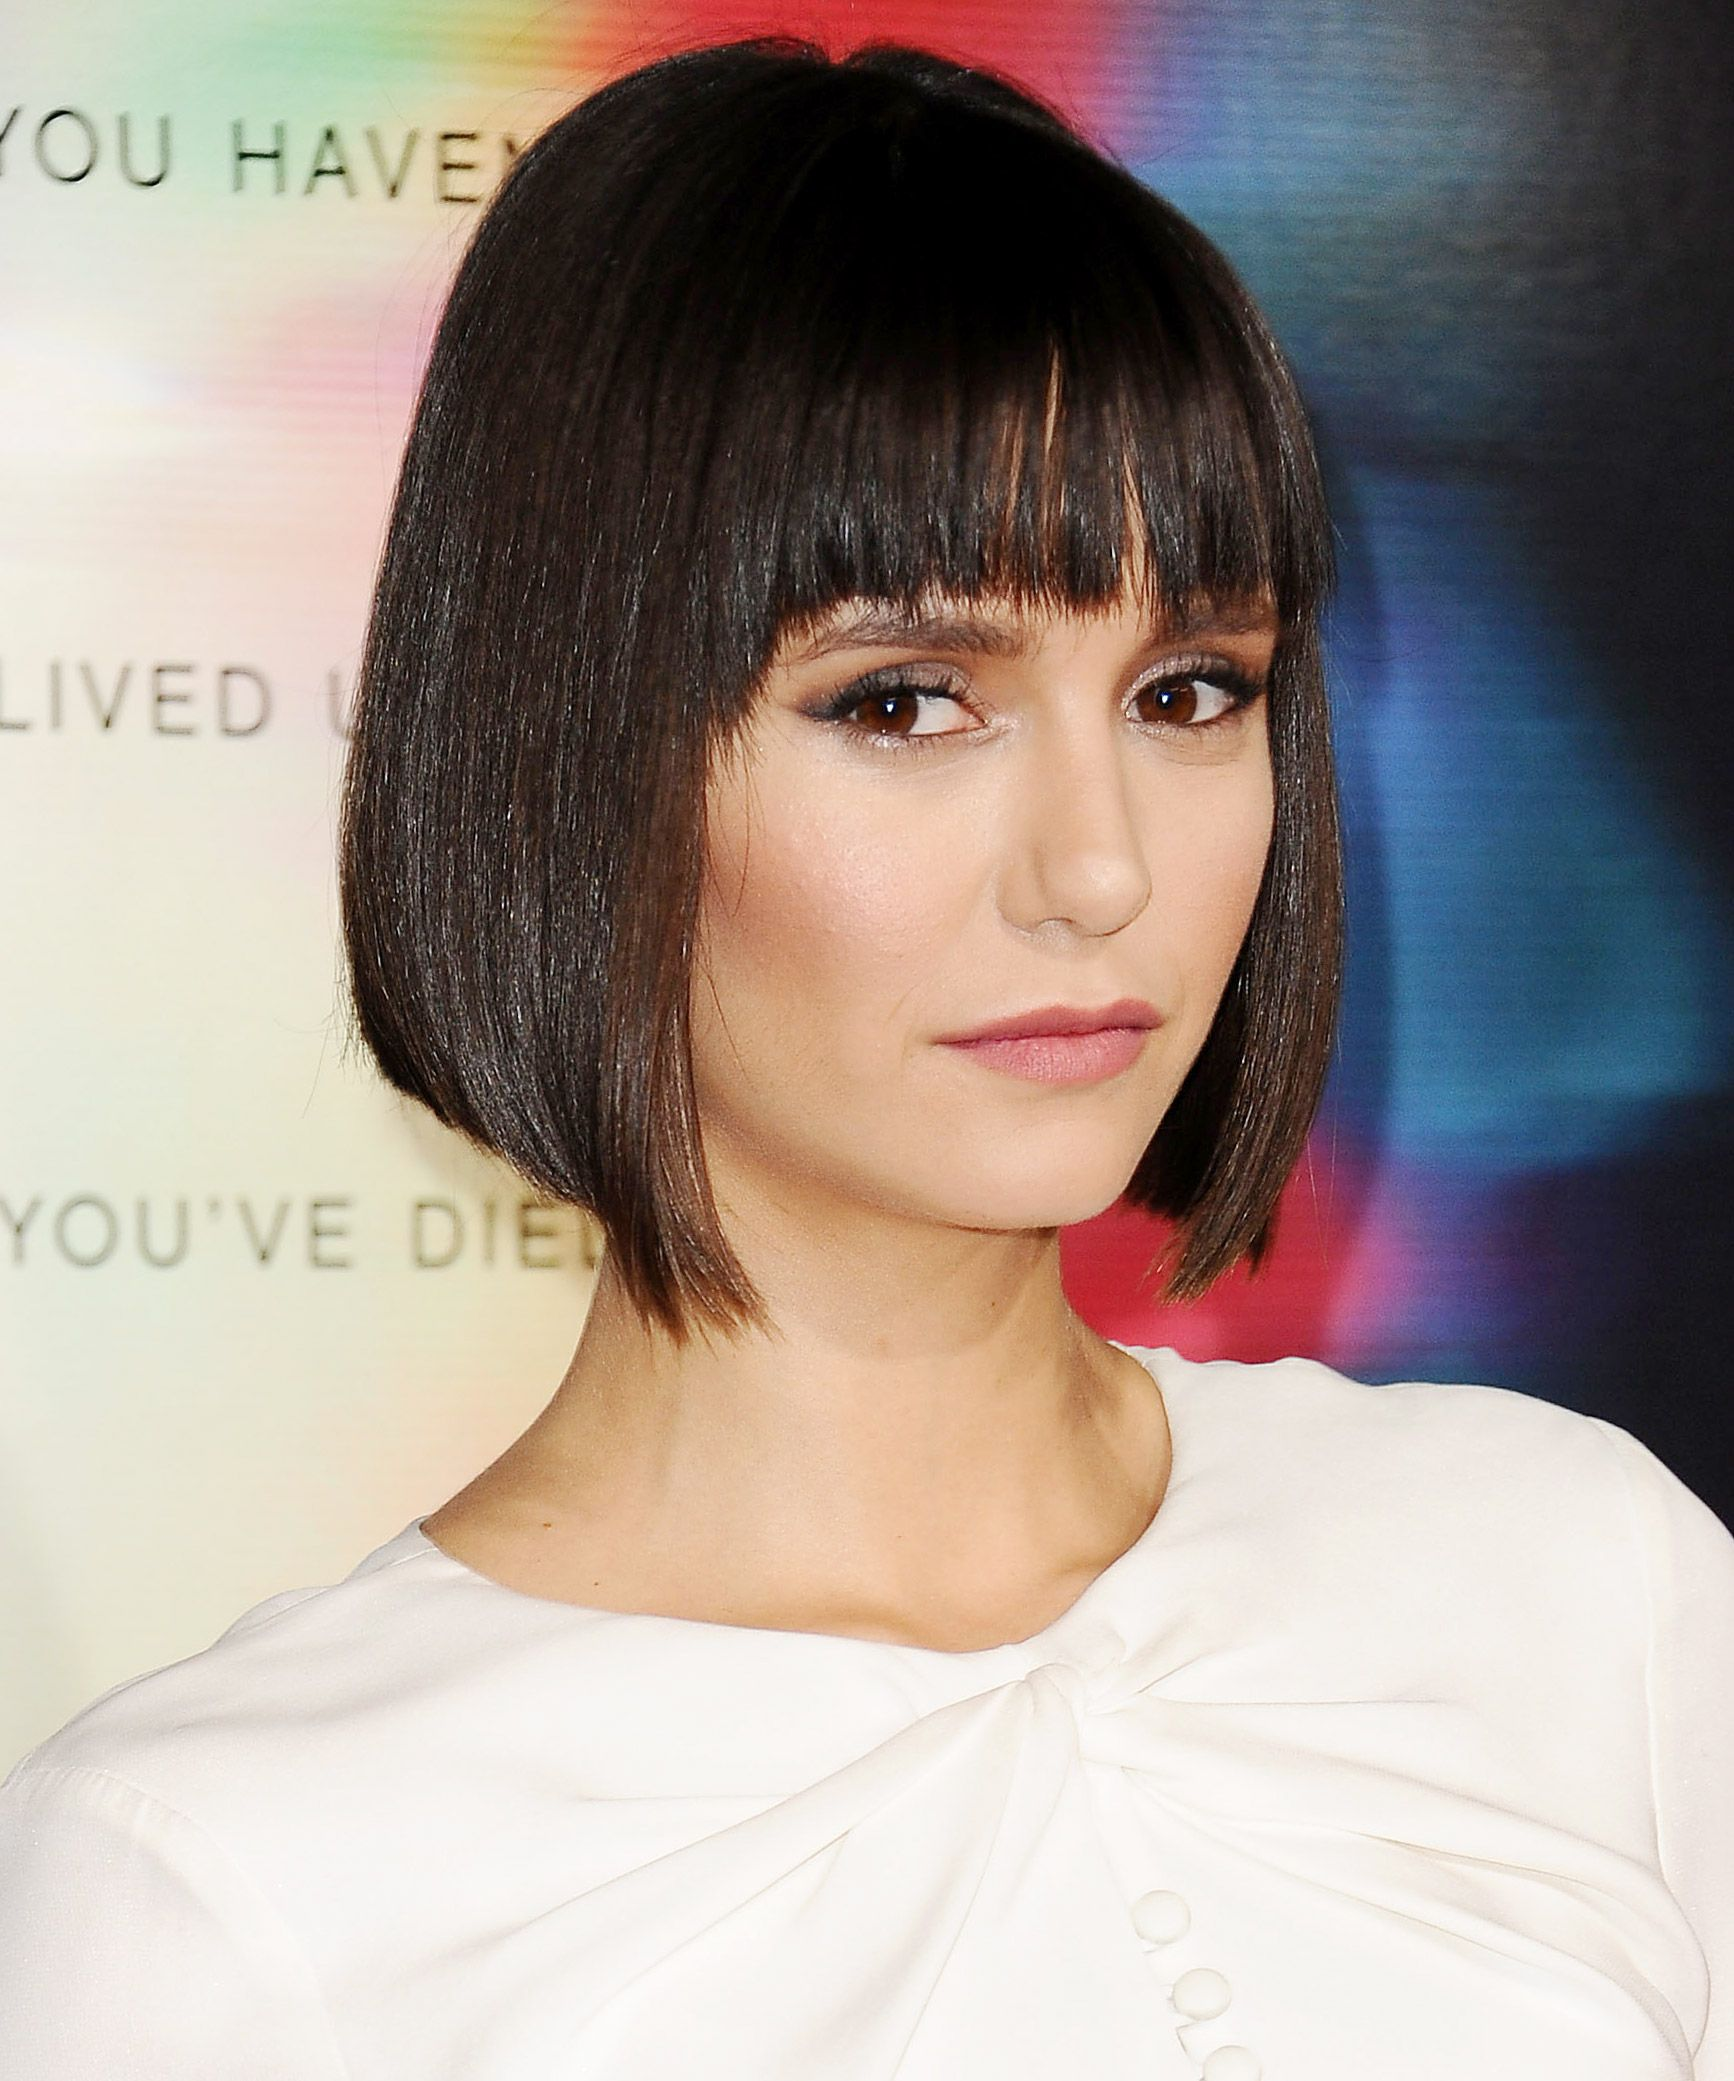 Nina Dobrev Confirms Everyone Is Getting Bangs and a Bob Right Now